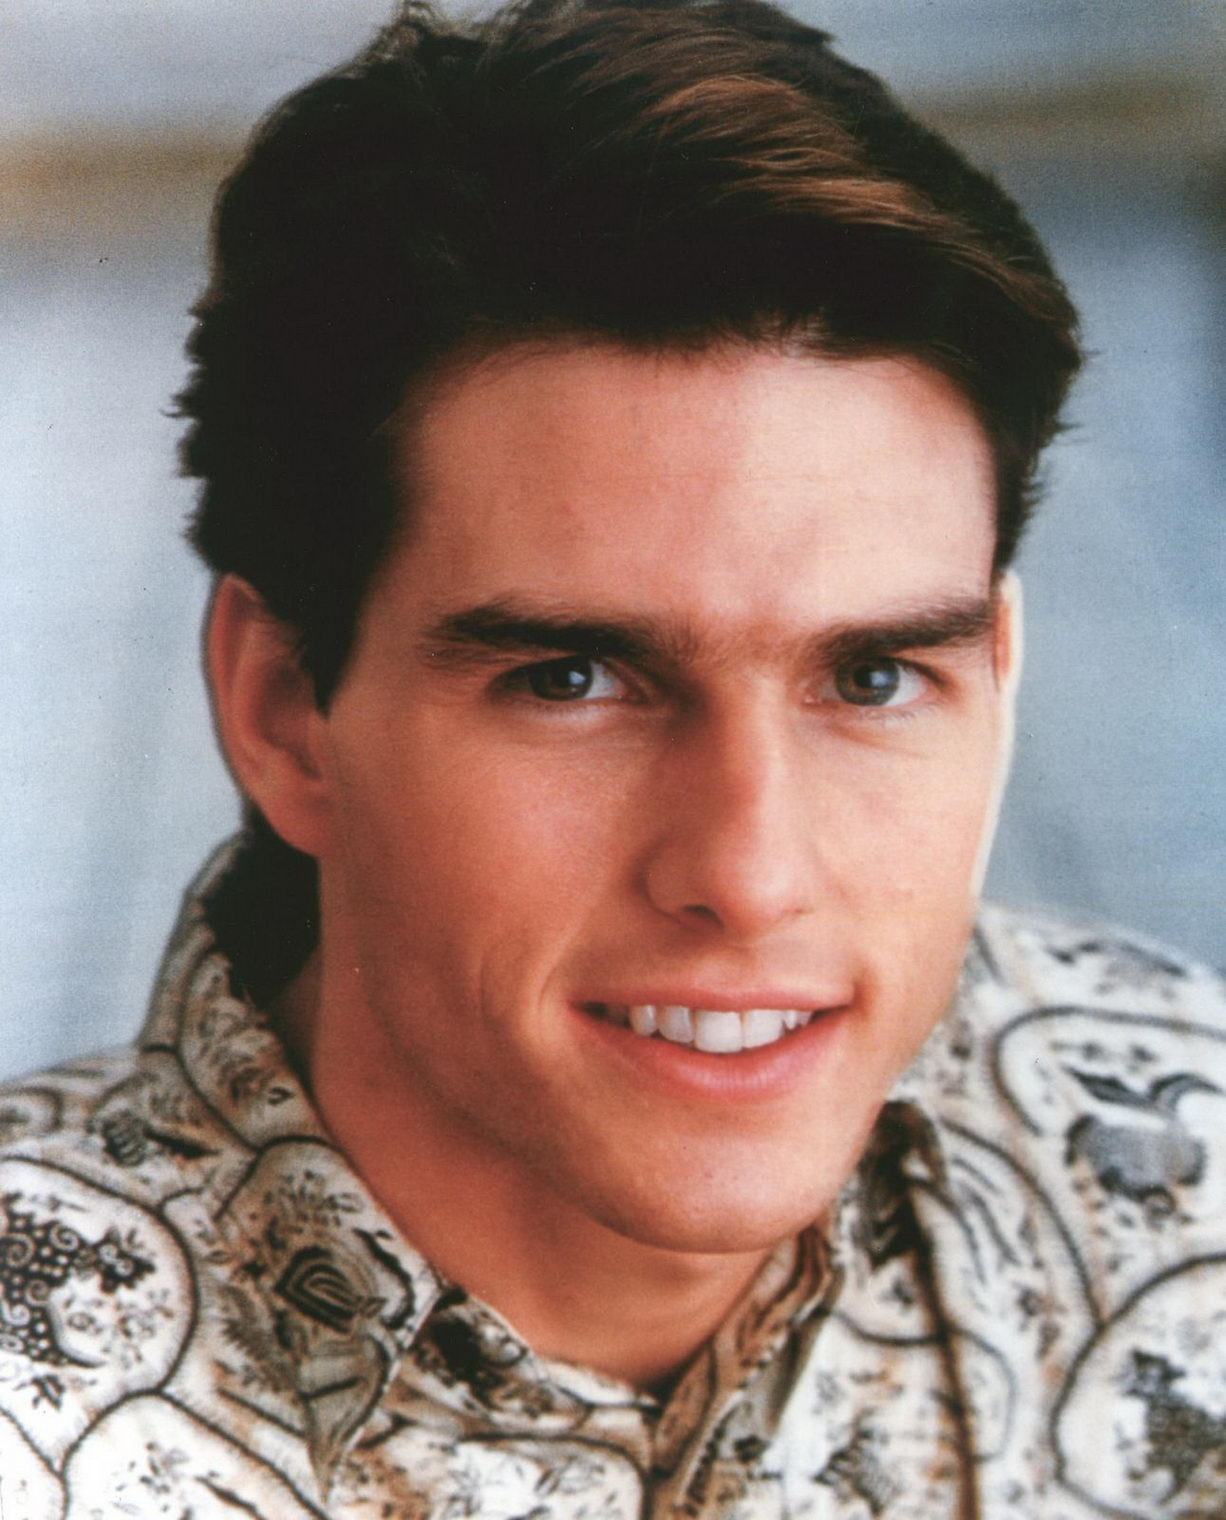 hairstyles for men: Tom Cruise Hair - The Sleek Appearance ...